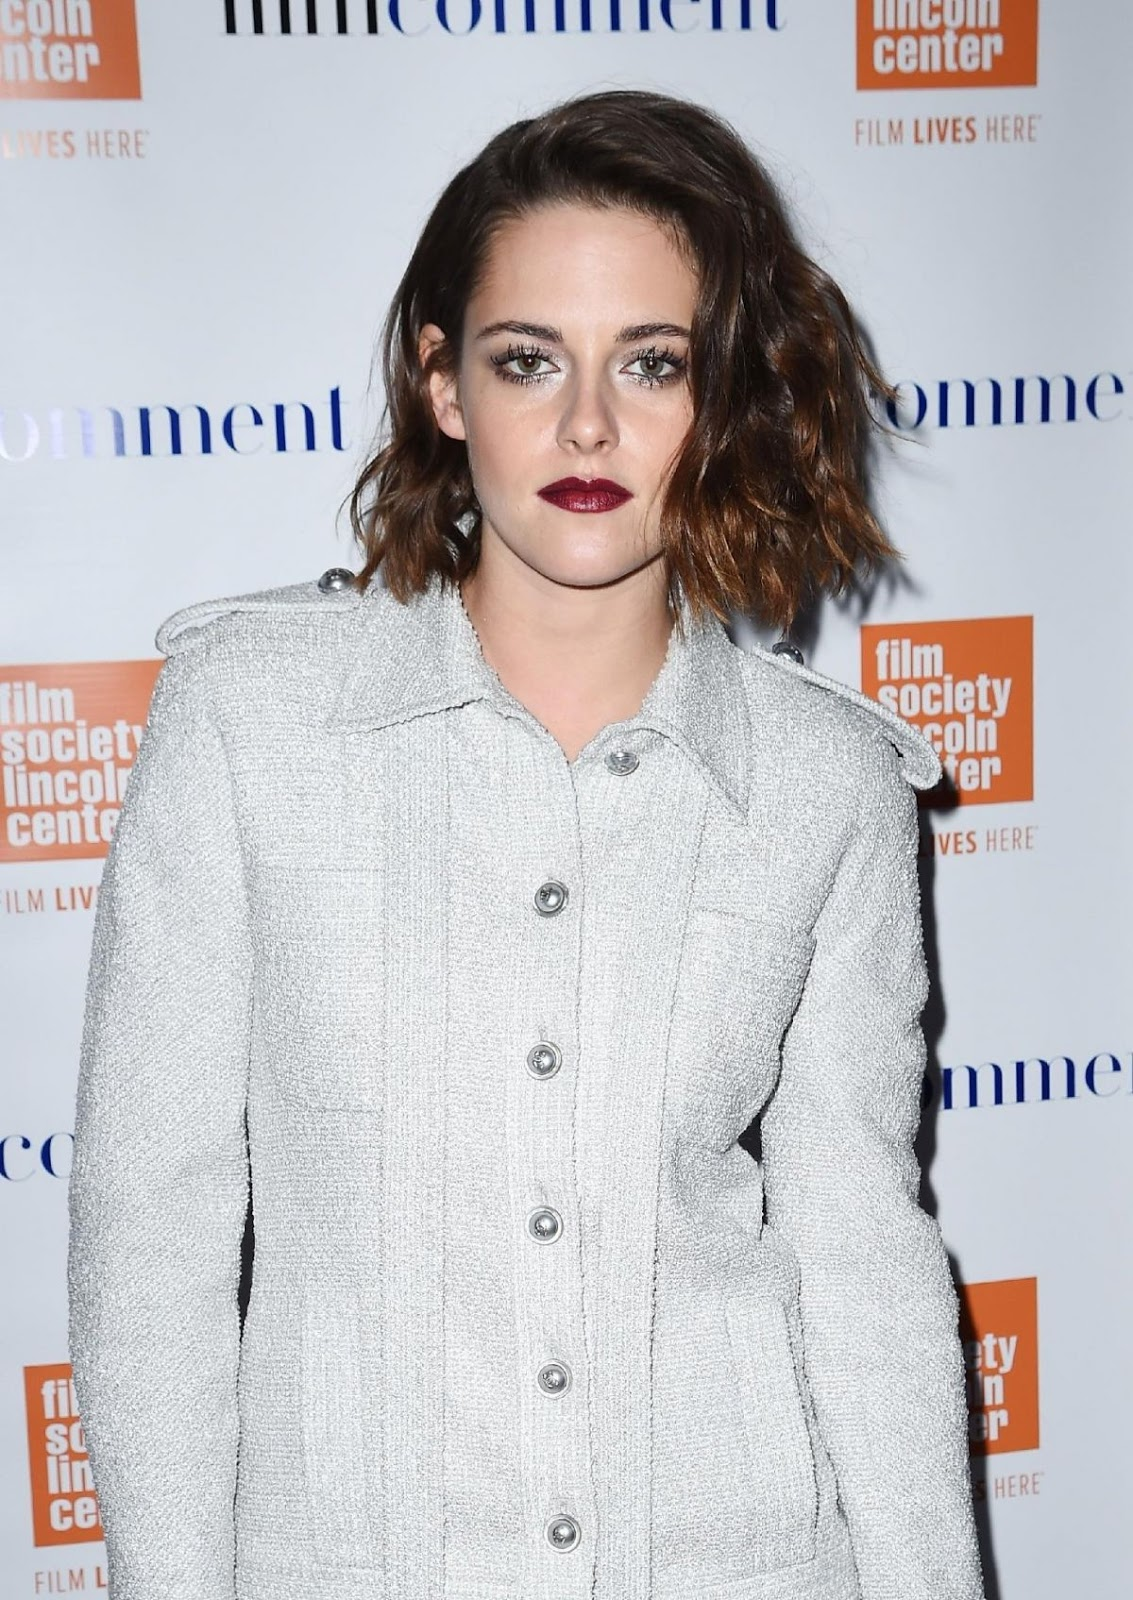 Kristen Stewart Leaves Hotel for 2016 Film Society in New York